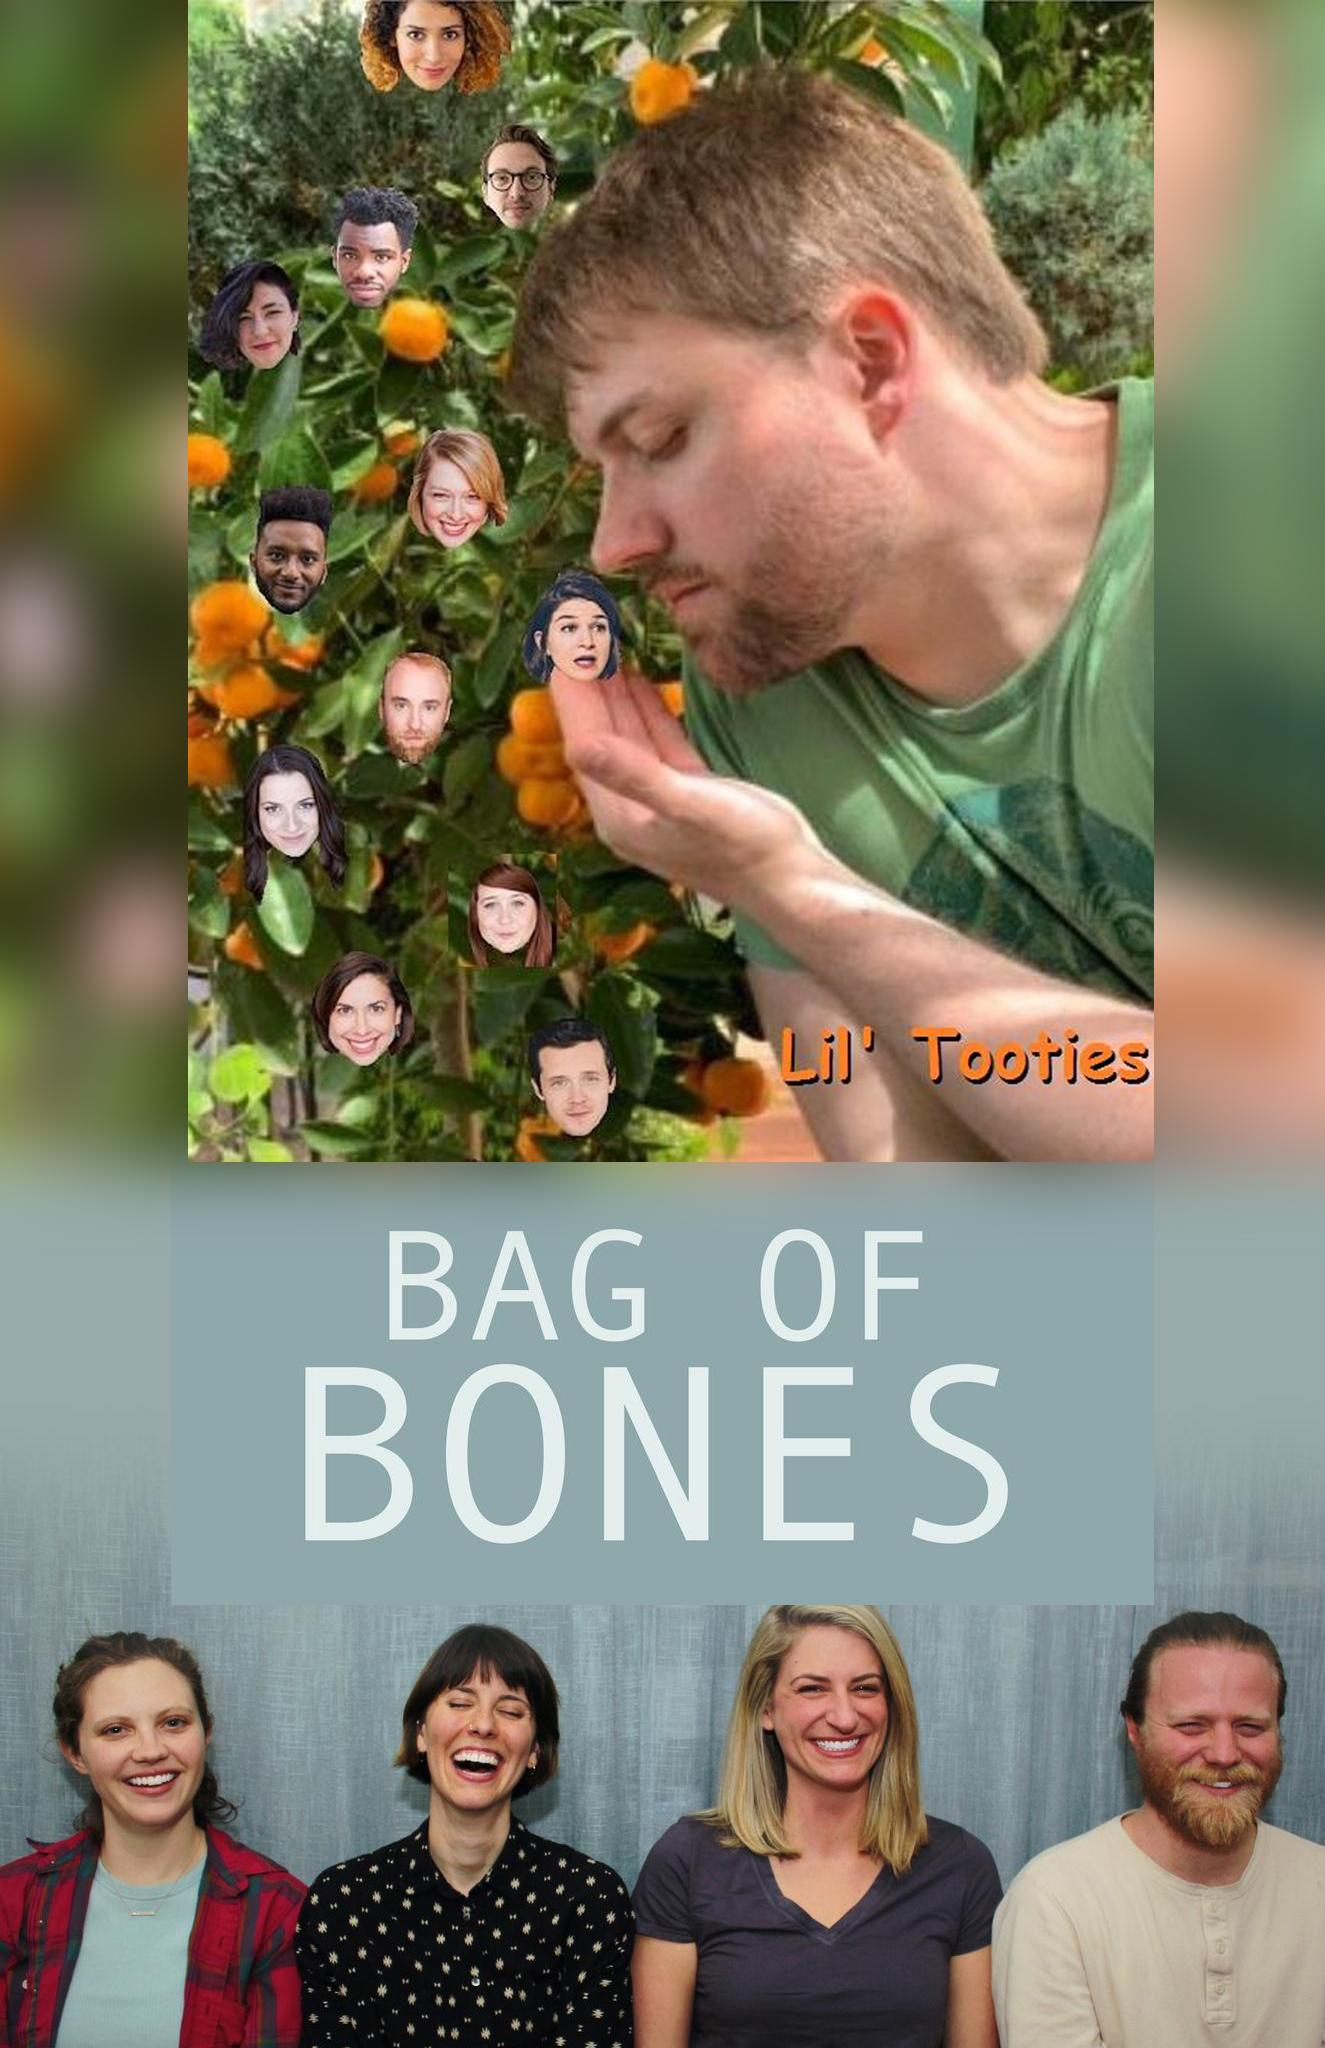 Lil' Tooties, Bag of Bones